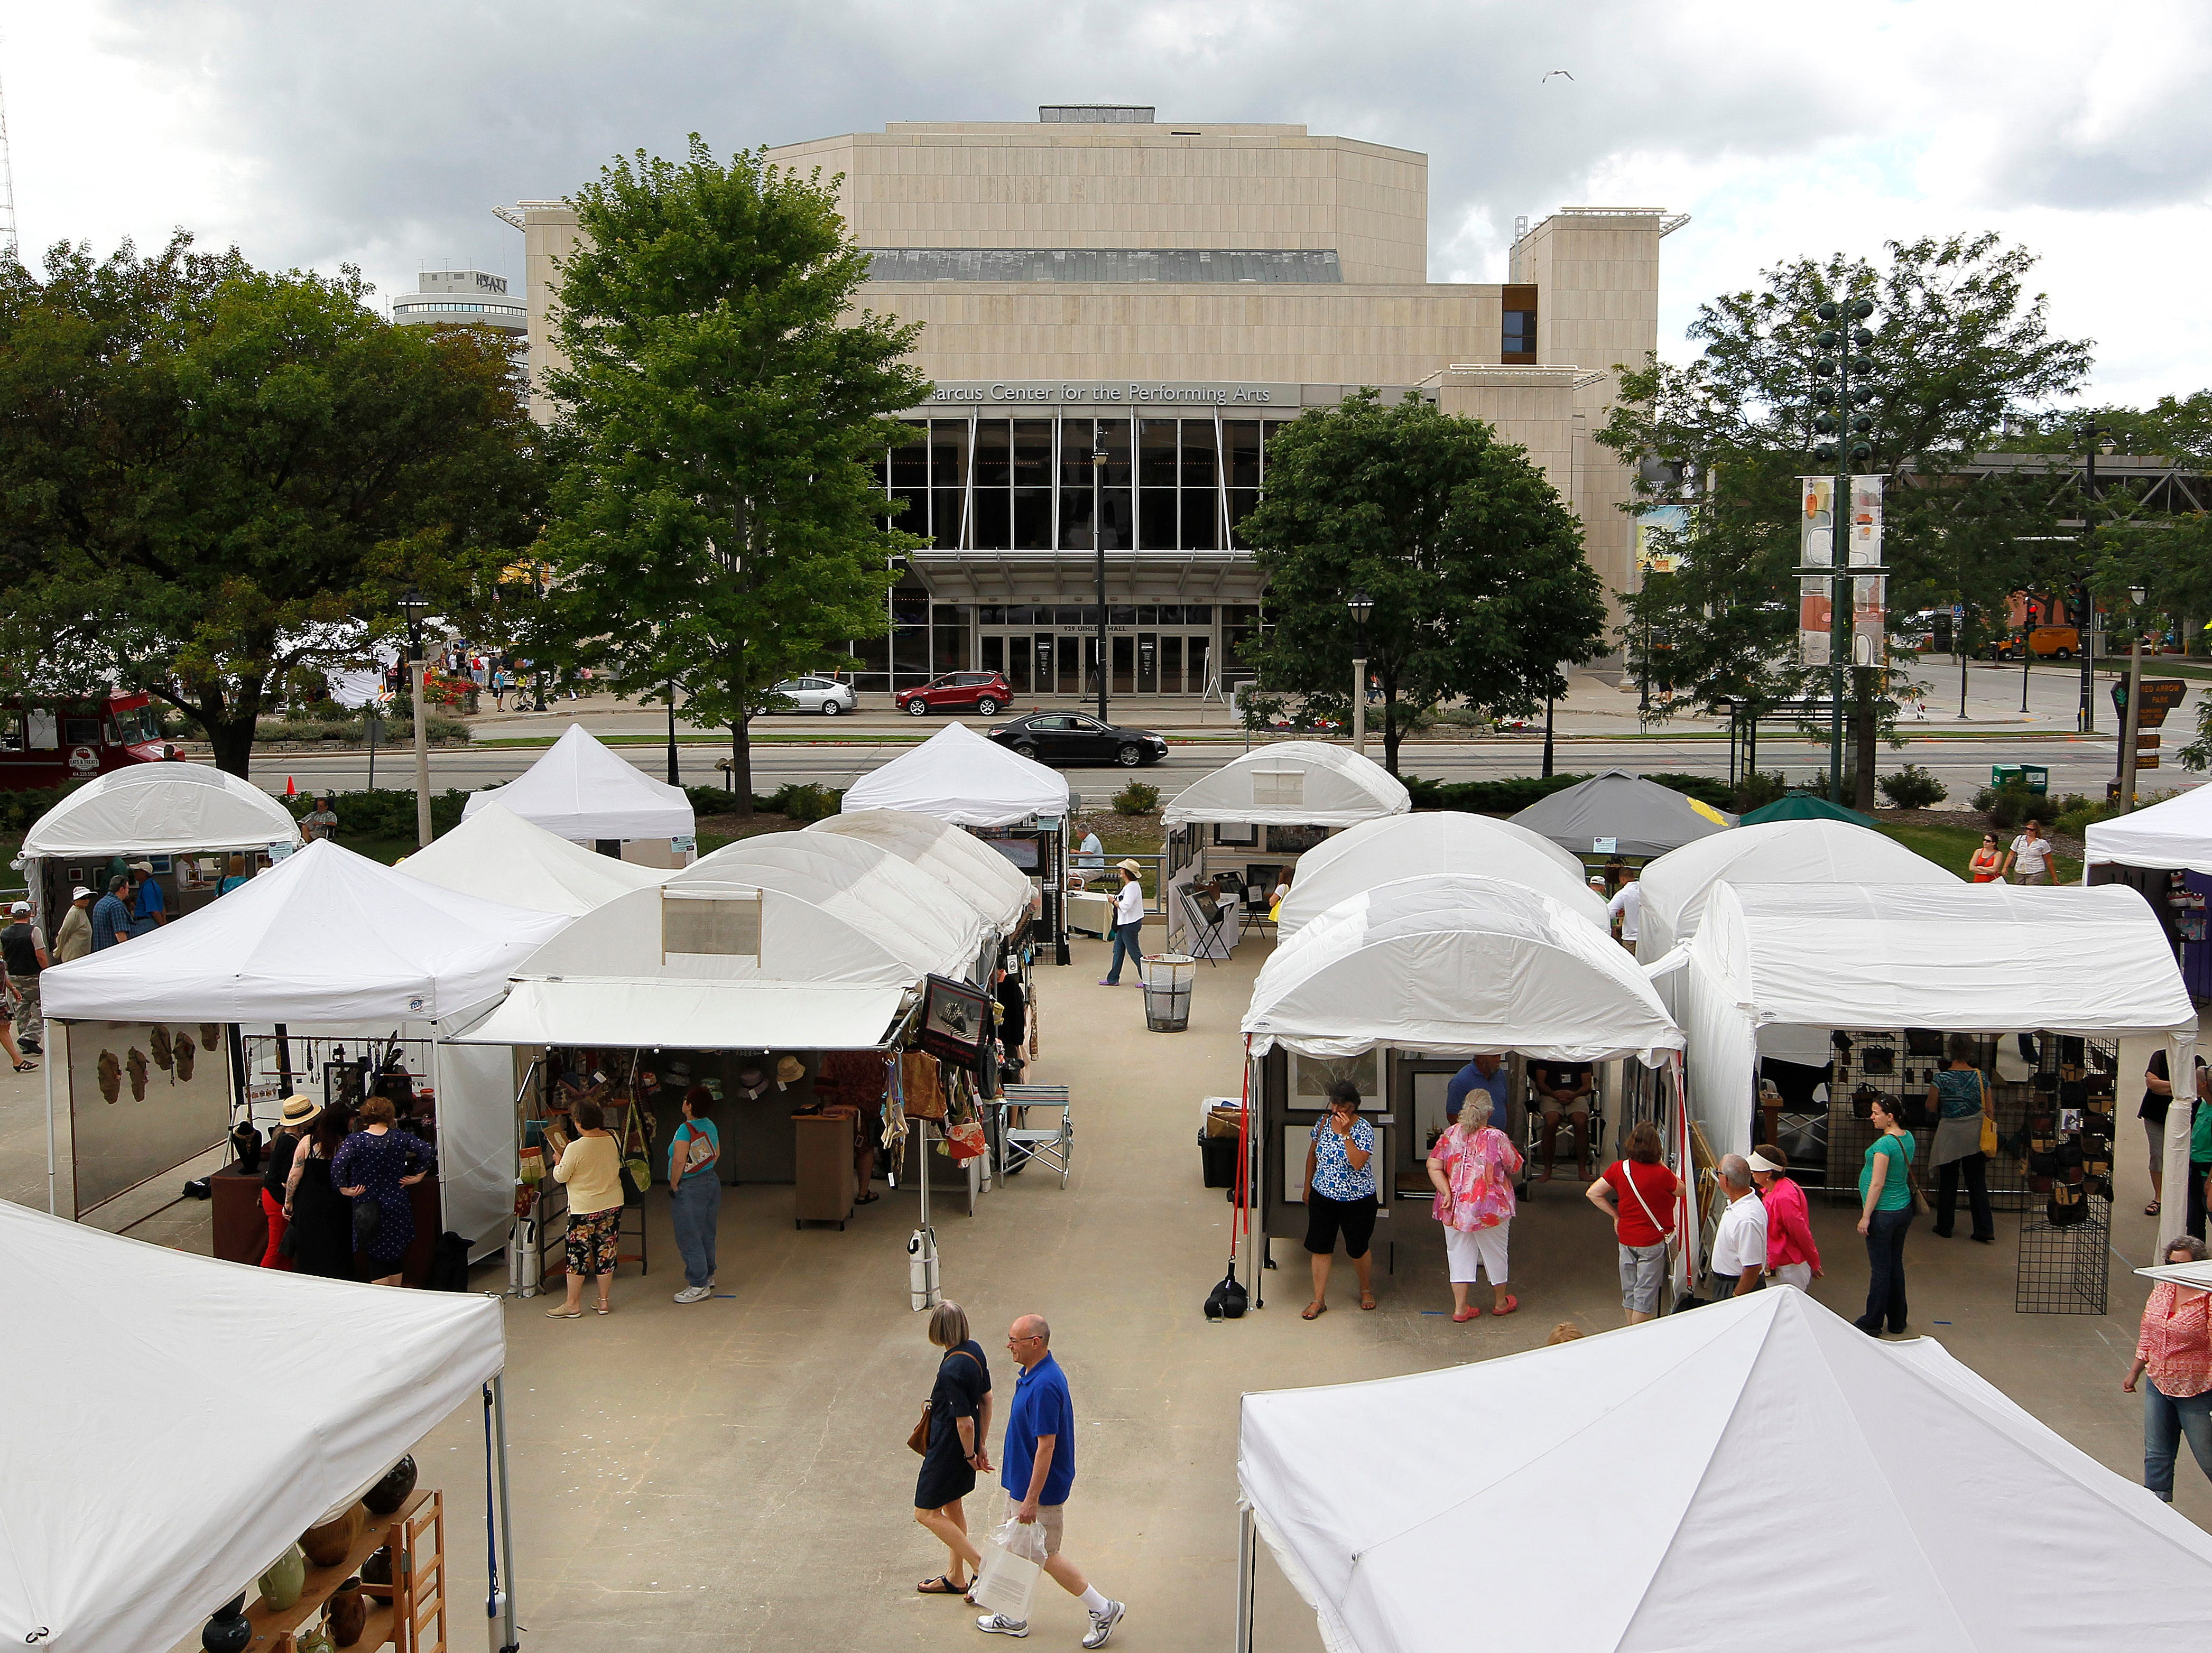 CRAFTFAIR, NWS, PORTER, 1. - Shoppers wander amongst the displays at the 39th annual Morning Glory Fine Craft Fair, taking place this weekend on the grounds of the Marcus Center for the Performing Arts and Red Arrow Park. The free event features over 140 fine craft artists working in all kinds of media. August 10, 2013. GARY PORTER/GPORTER@JOURNALSENTINEL.COM